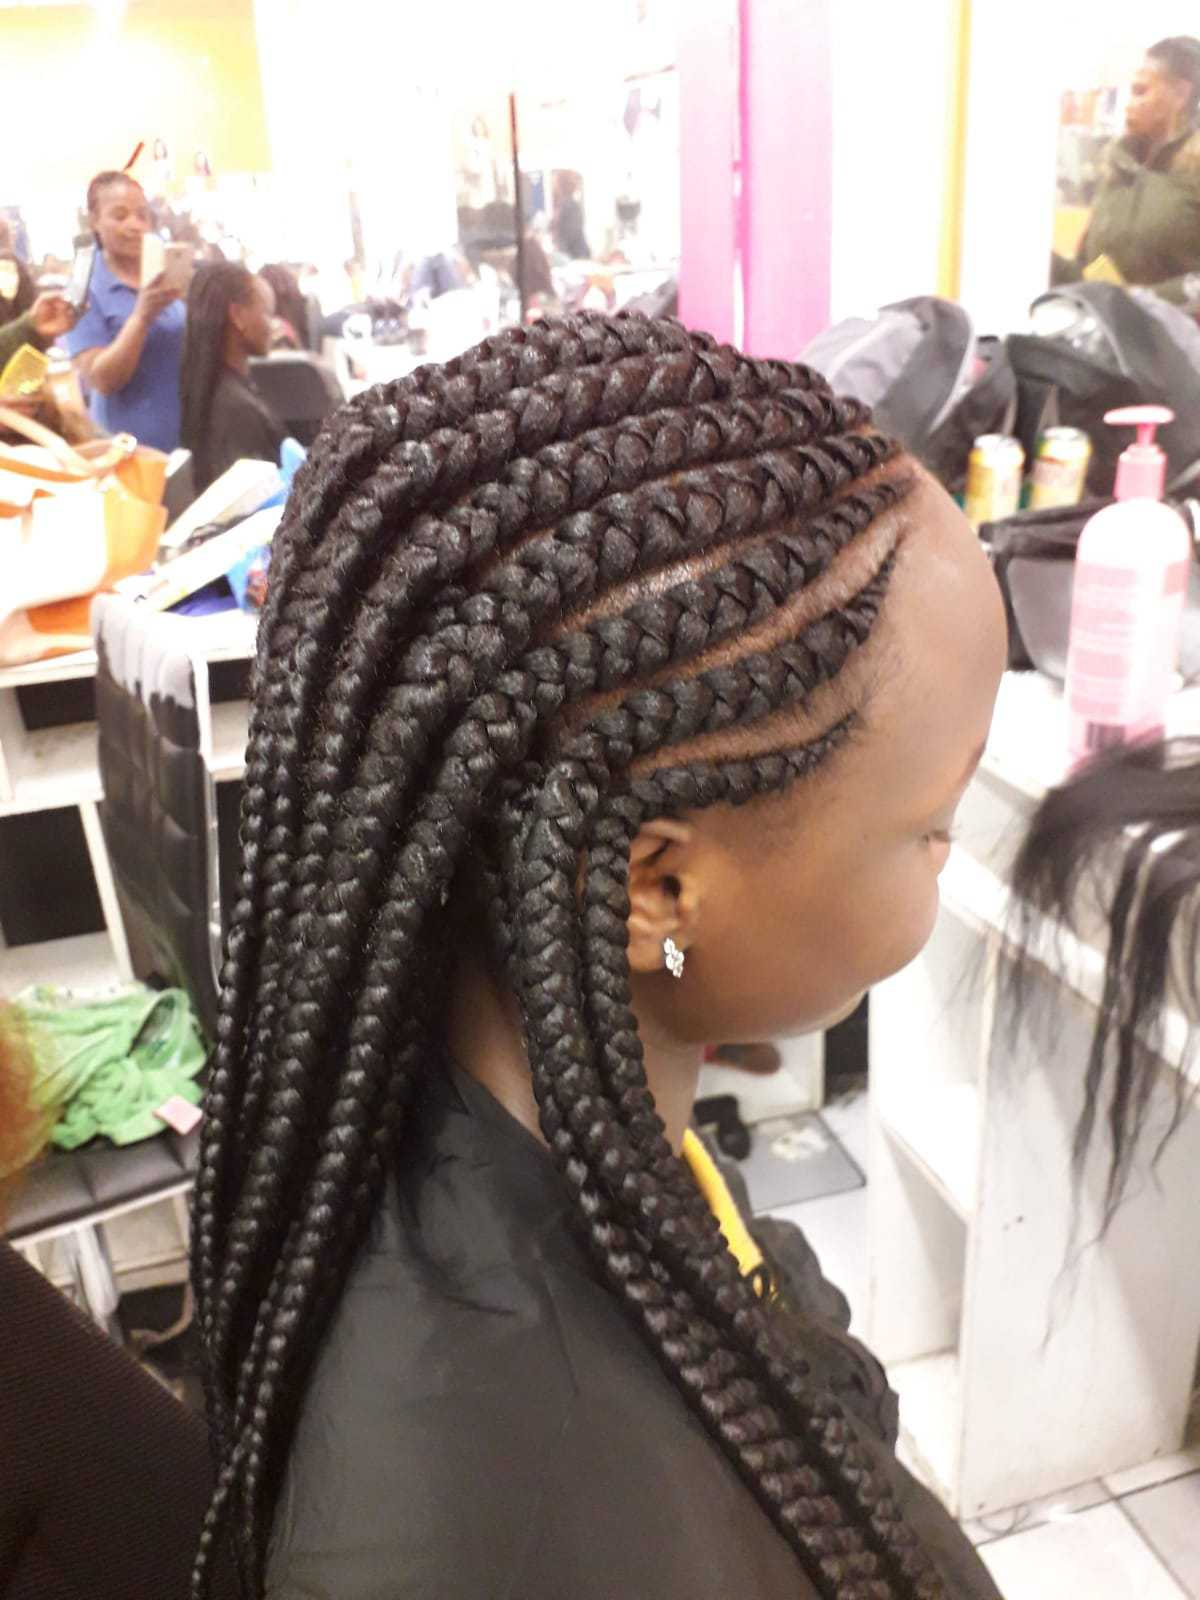 salon de coiffure afro tresse tresses box braids crochet braids vanilles tissages paris 75 77 78 91 92 93 94 95 ZNLSOZZC